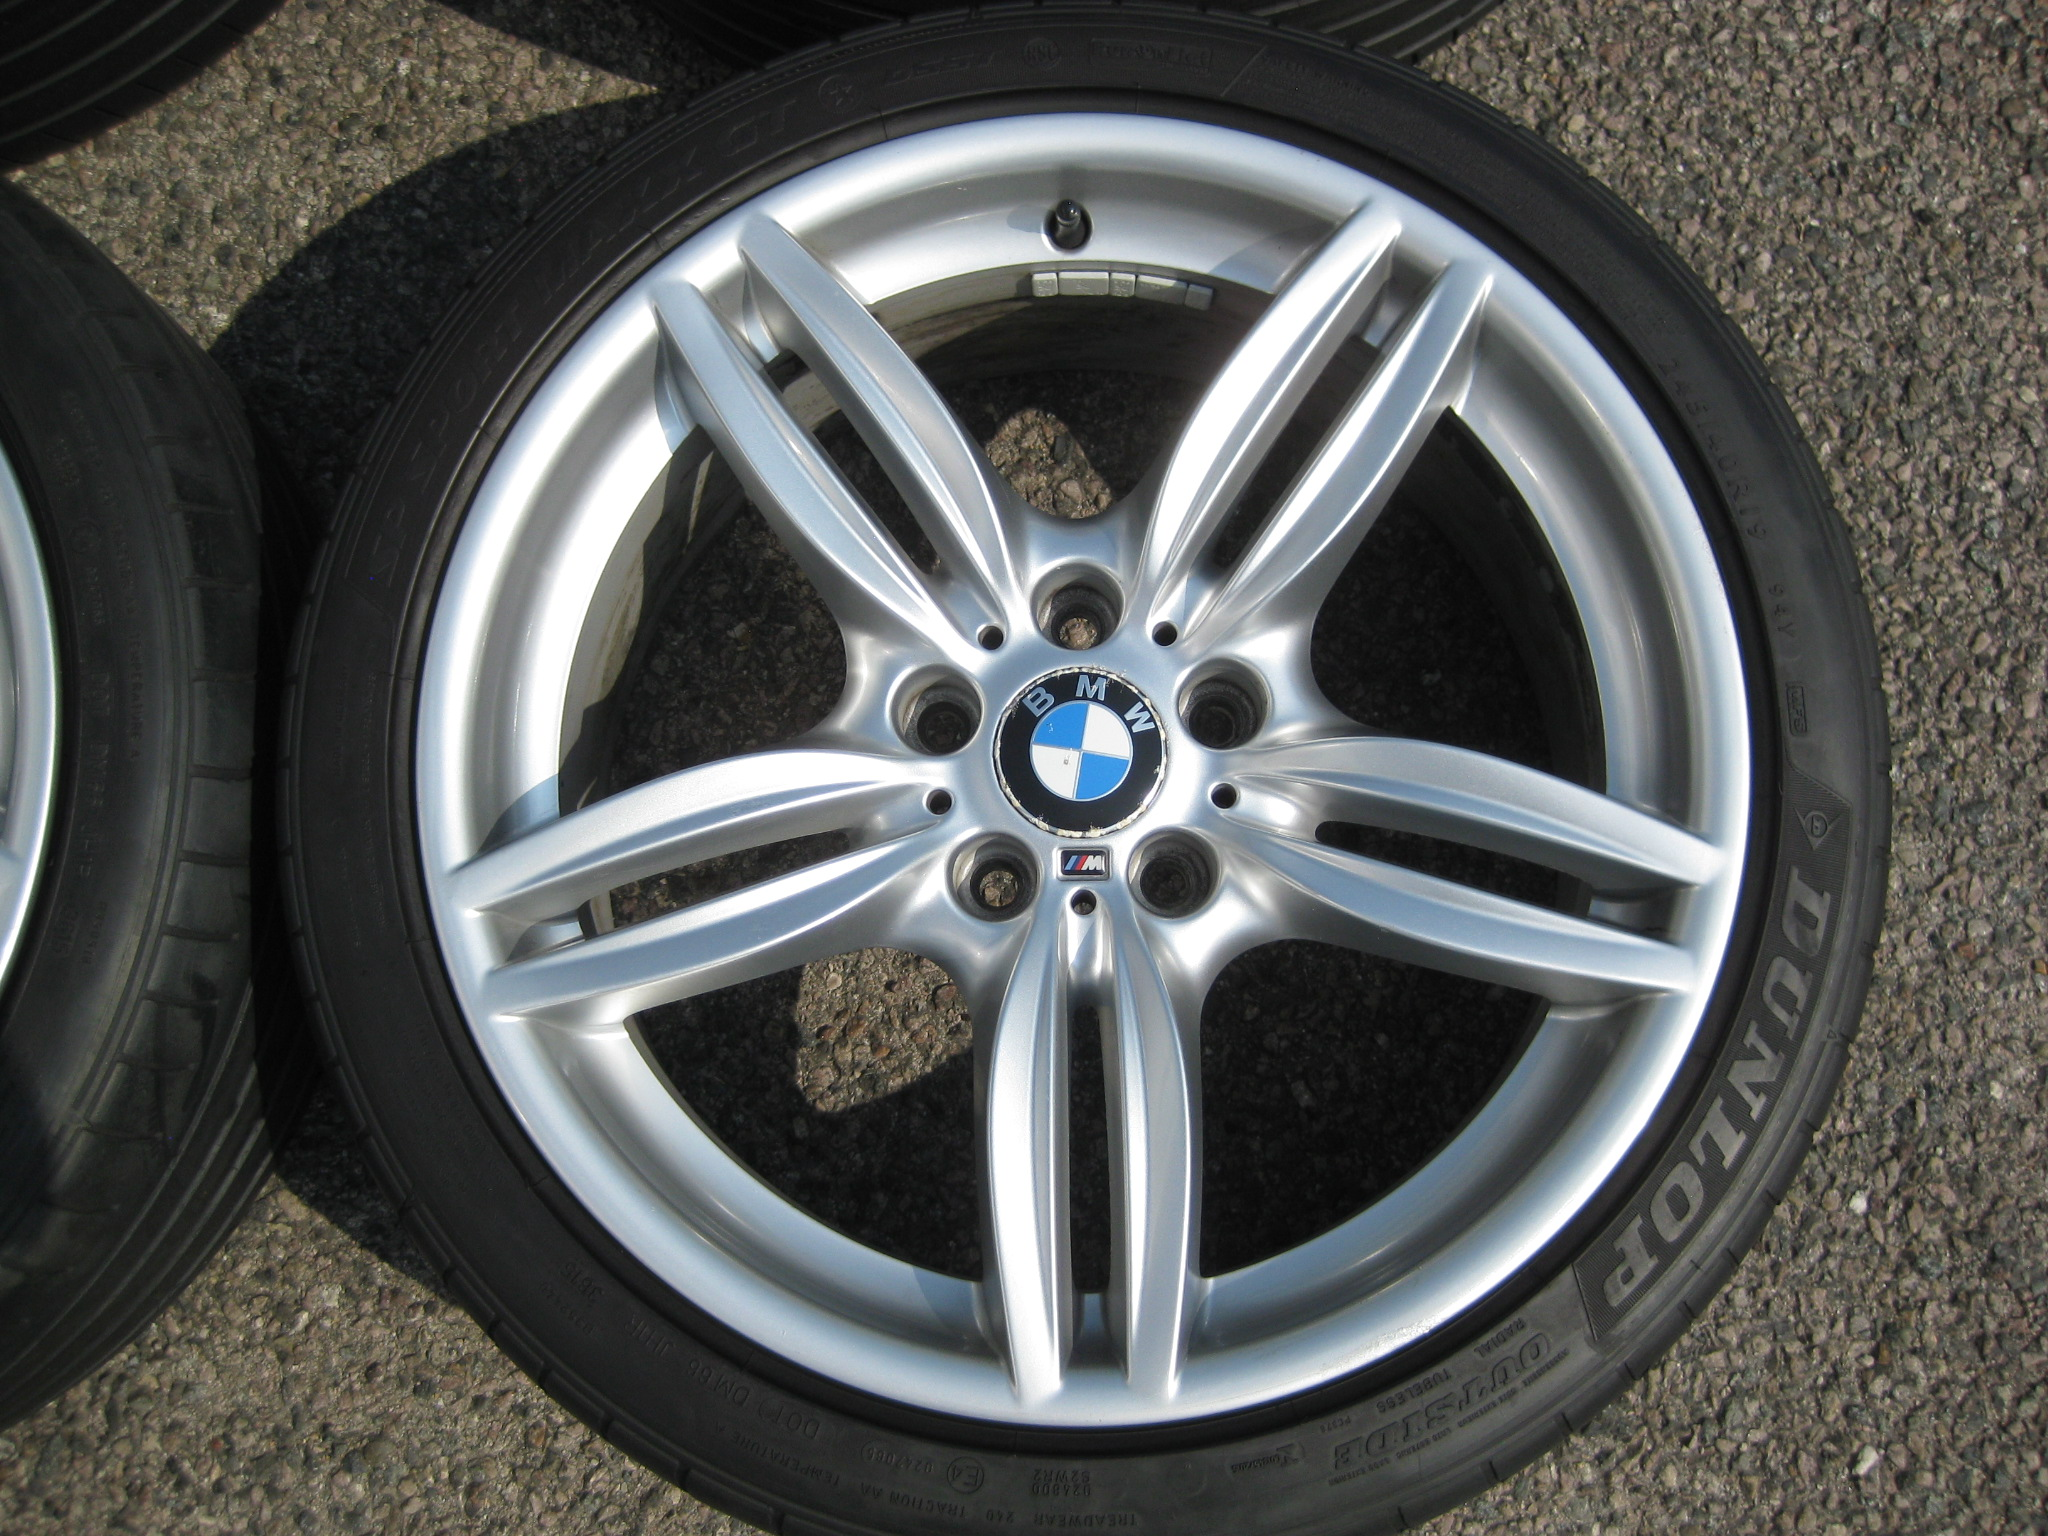 "USED 19"" GENUINE STYLE 351 F10 M SPORT ALLOYS,VGC WITH WIDE REARS INC DUNLOP RUNFLAT TYRES"